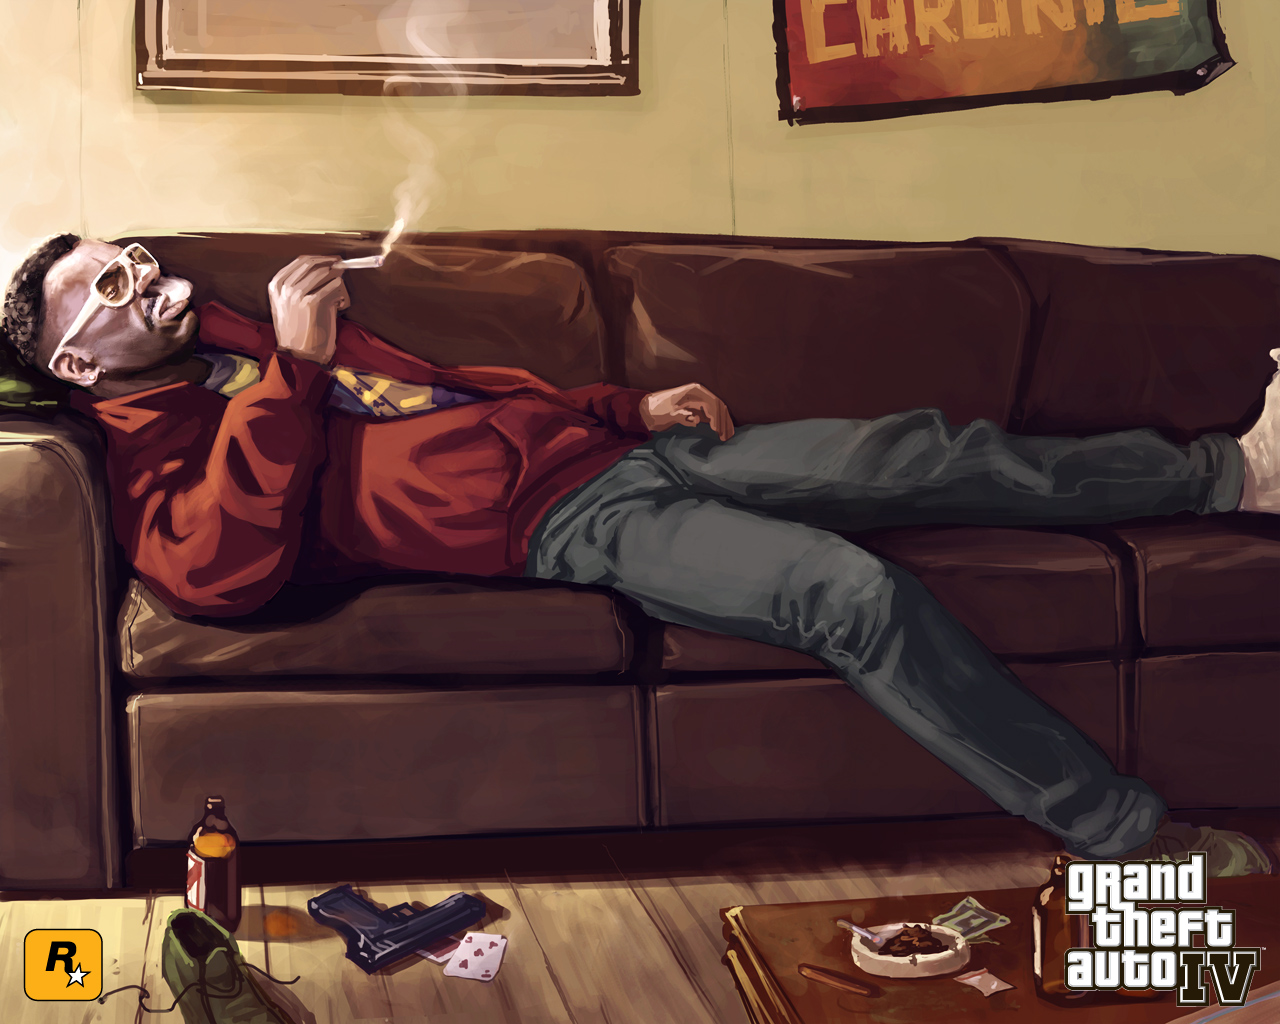 GTA IV Wallpapers